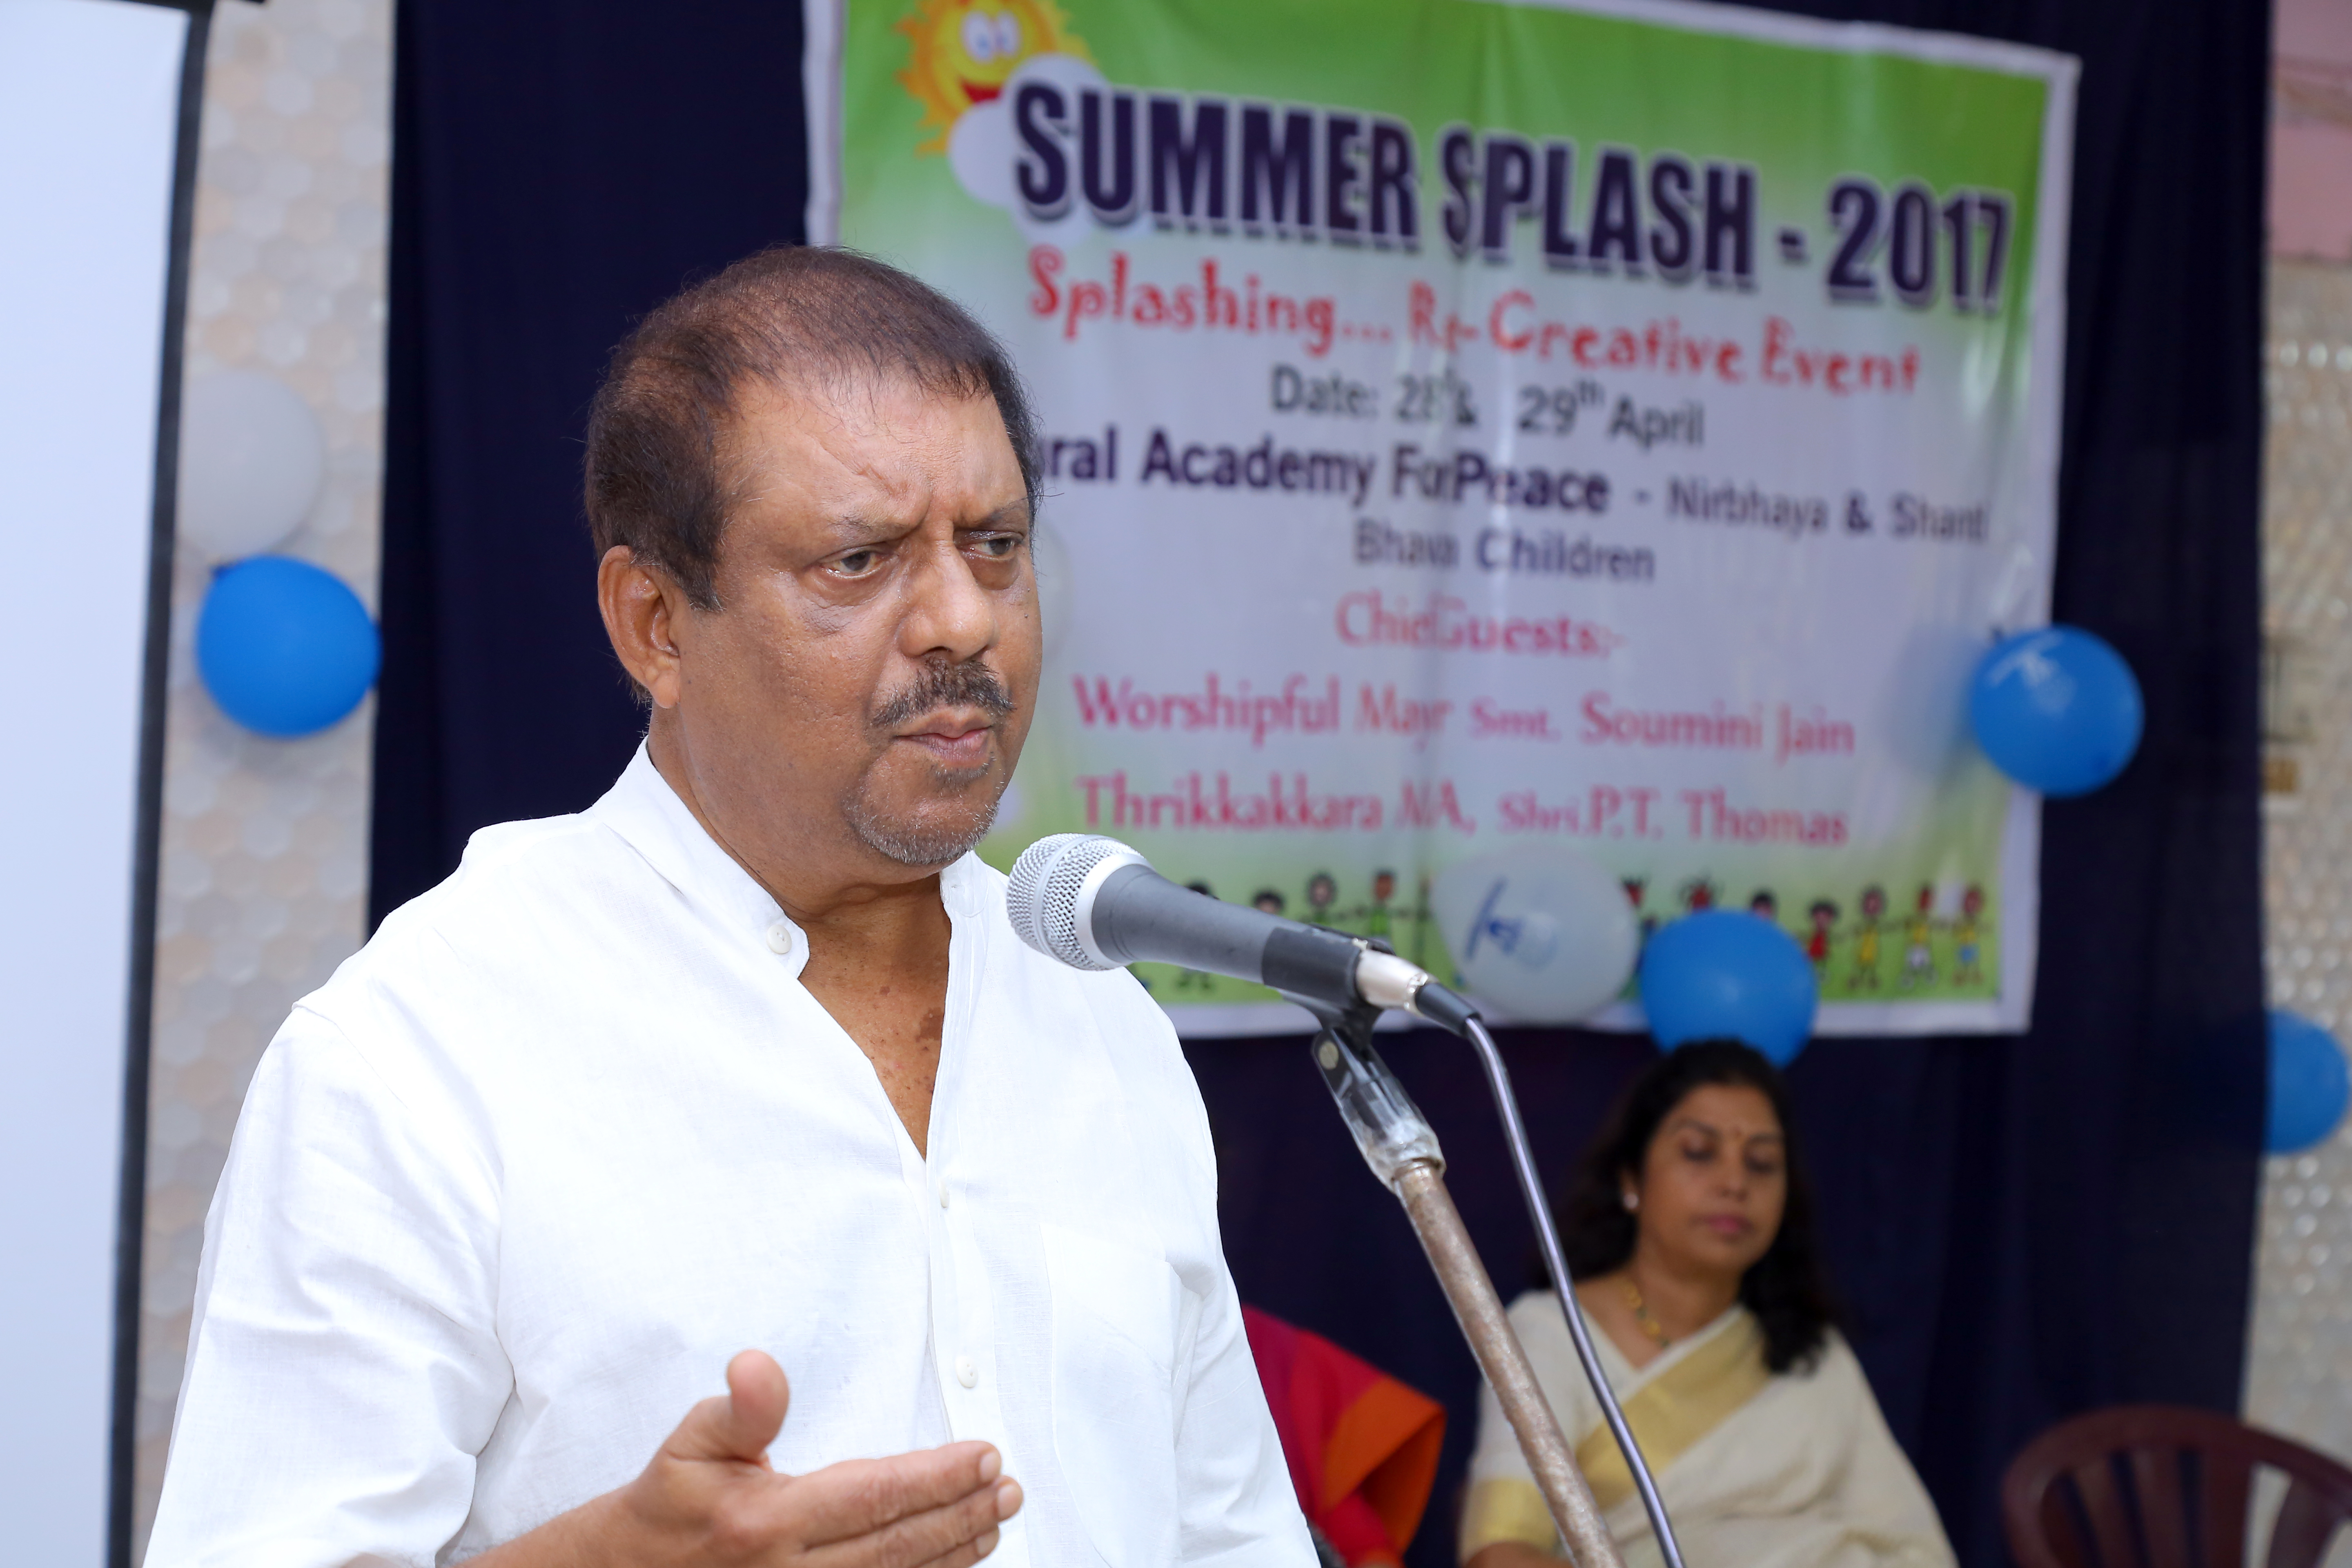 Summer Splash (10th May, 2018)